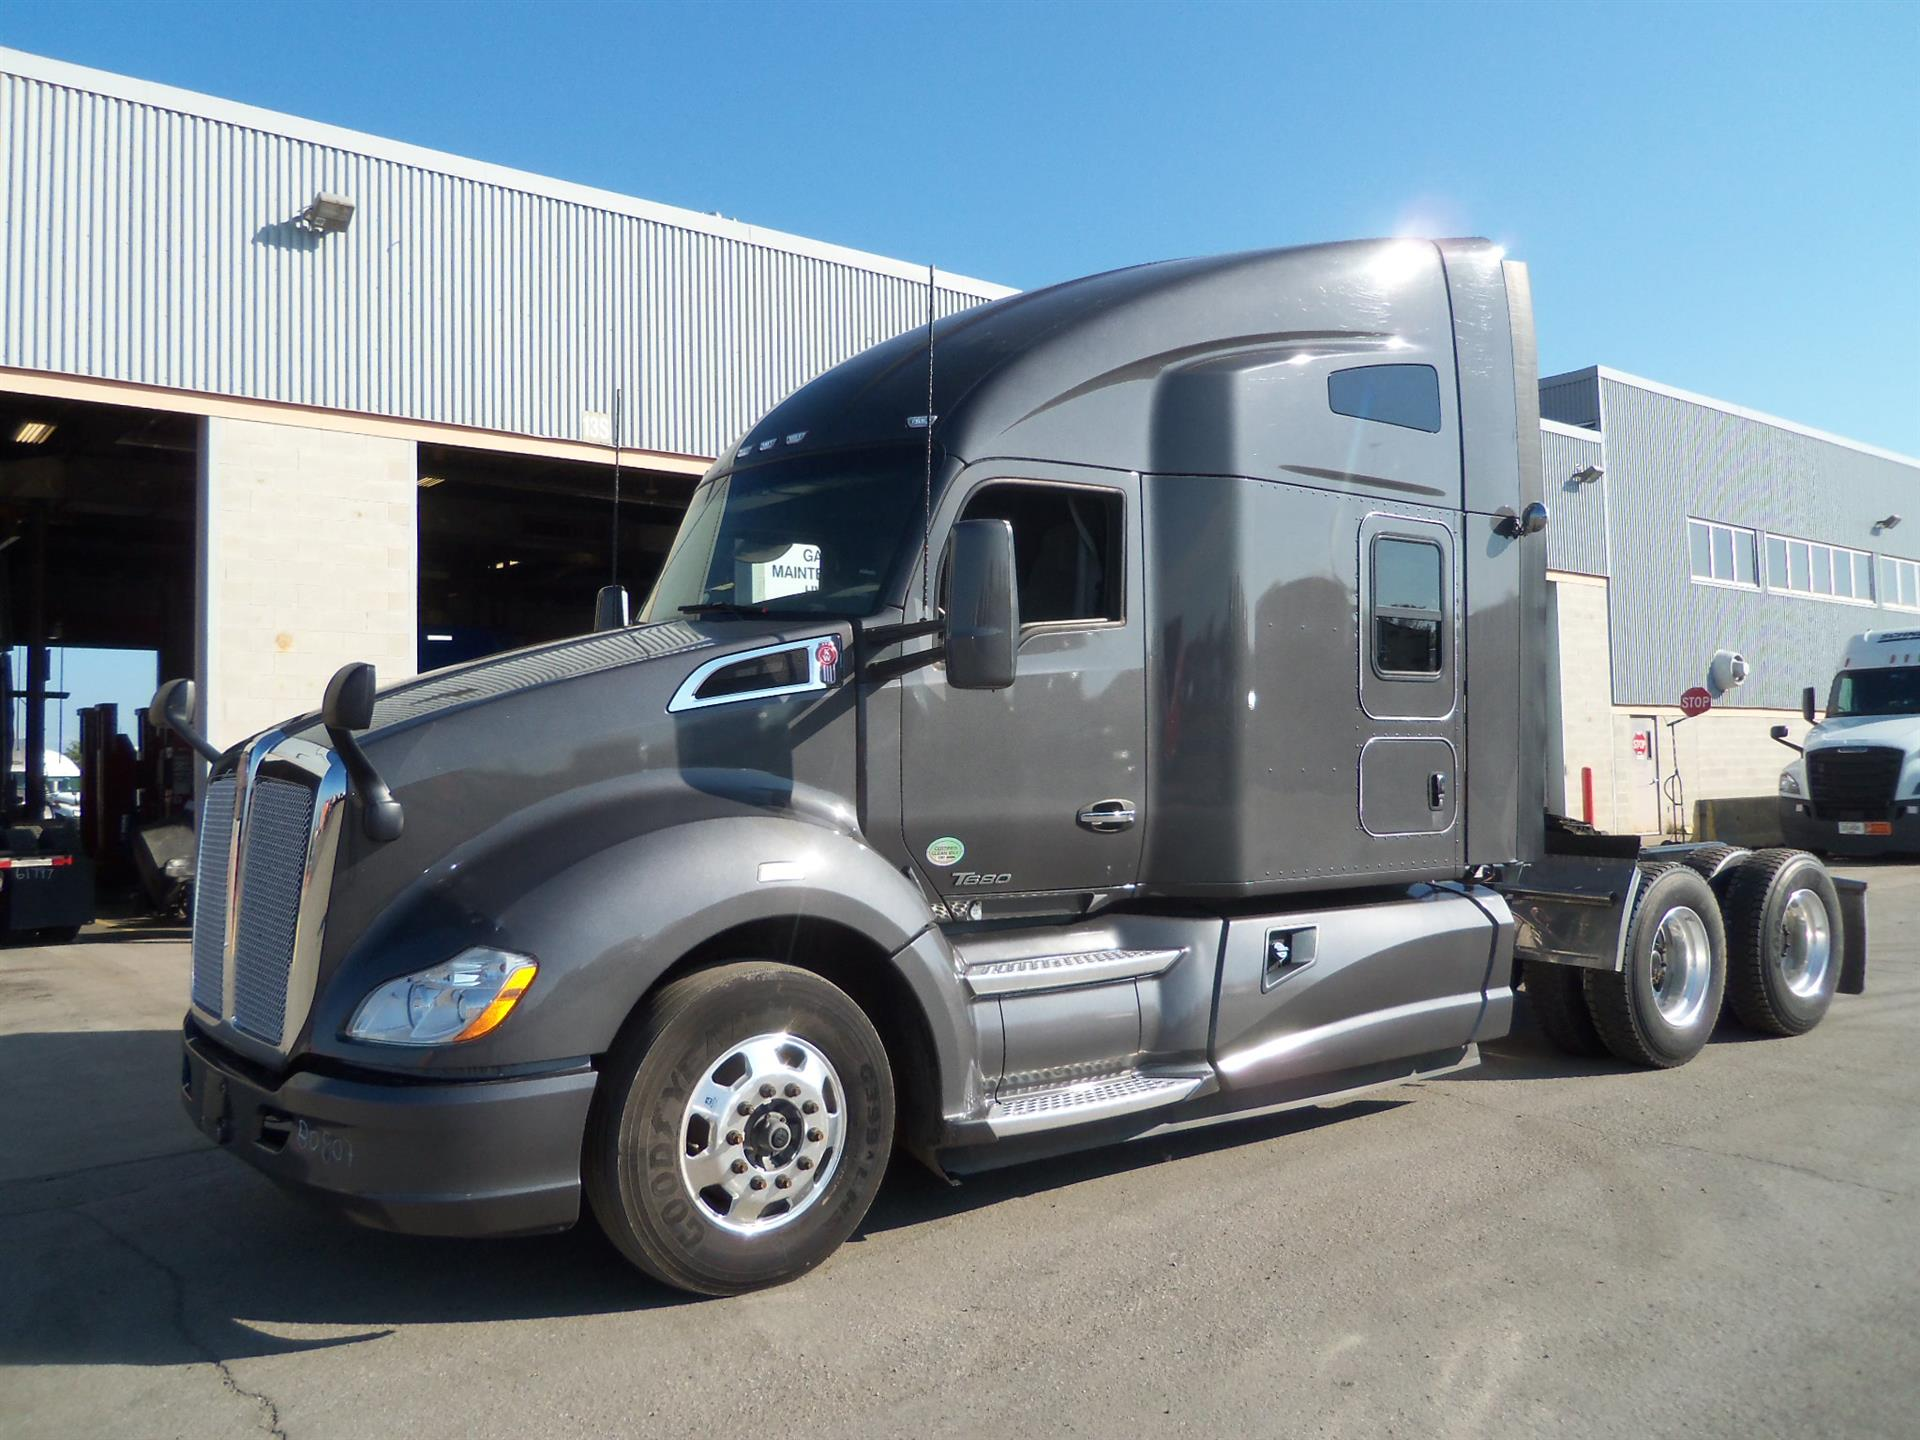 USED 2016 KENWORTH T680 SLEEPER TRUCK #133945